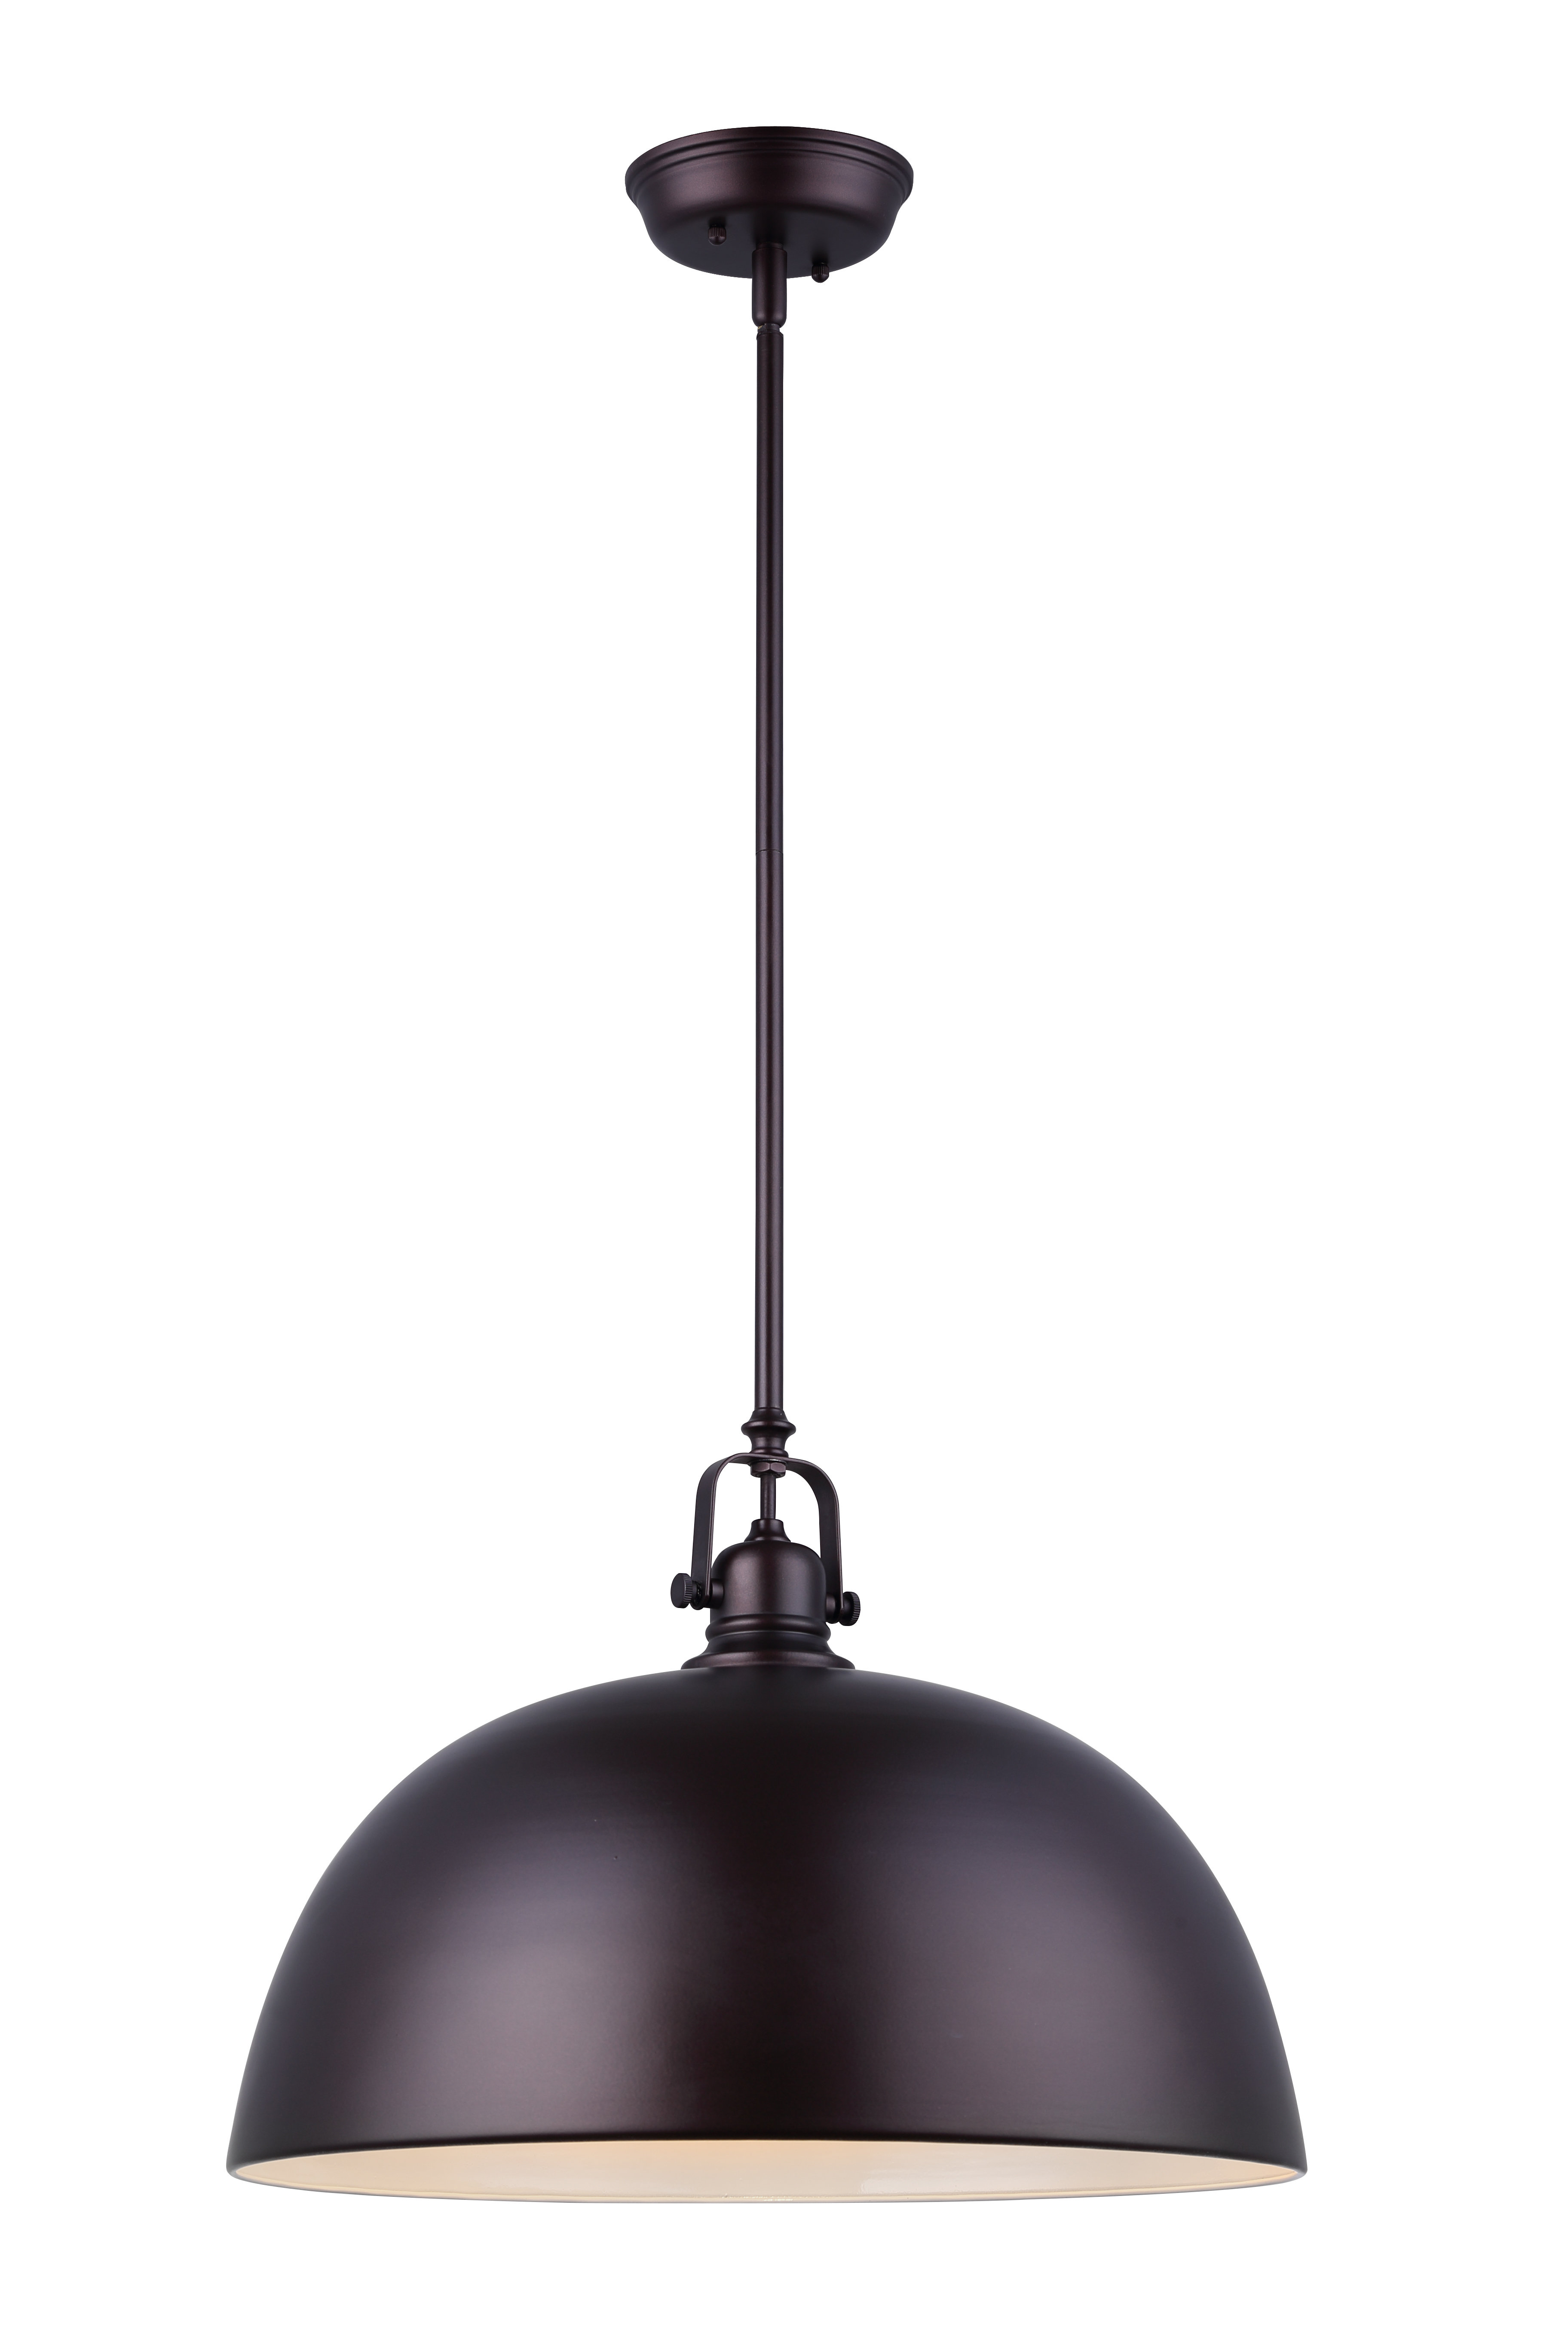 Southlake 1 Light Single Dome Pendant Within Most Recently Released Houon 1 Light Cone Bell Pendants (View 17 of 20)